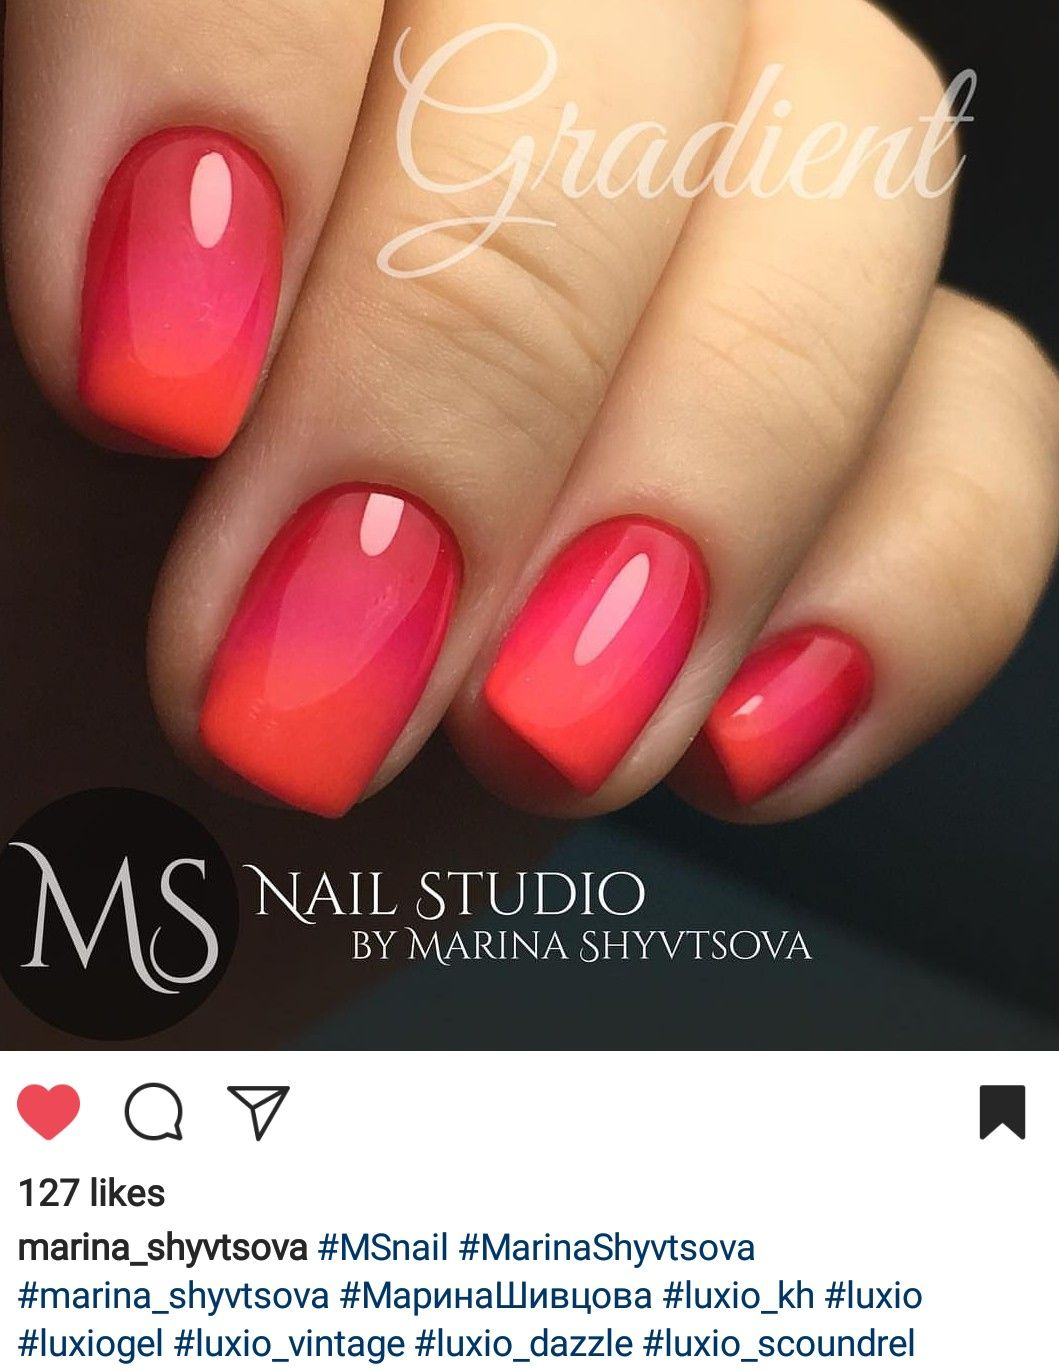 Pin by My Info on mani\'s and pedi\'s | Pinterest